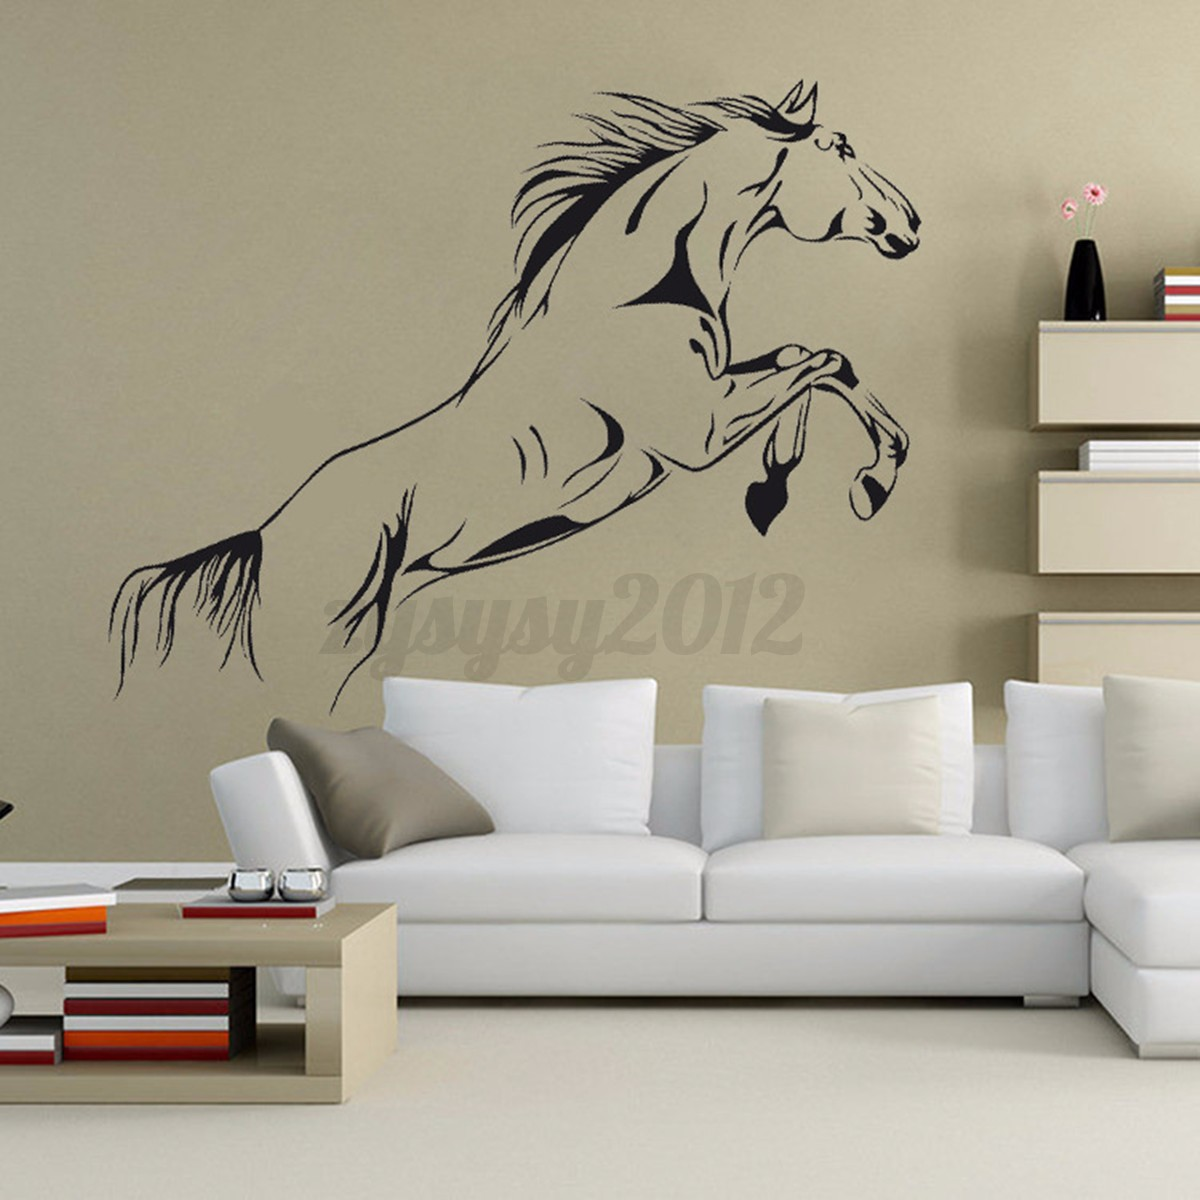 Animal Running Horse Wall Stickers Bedroom Home Art Vinyl Decal Removable Decor Ebay